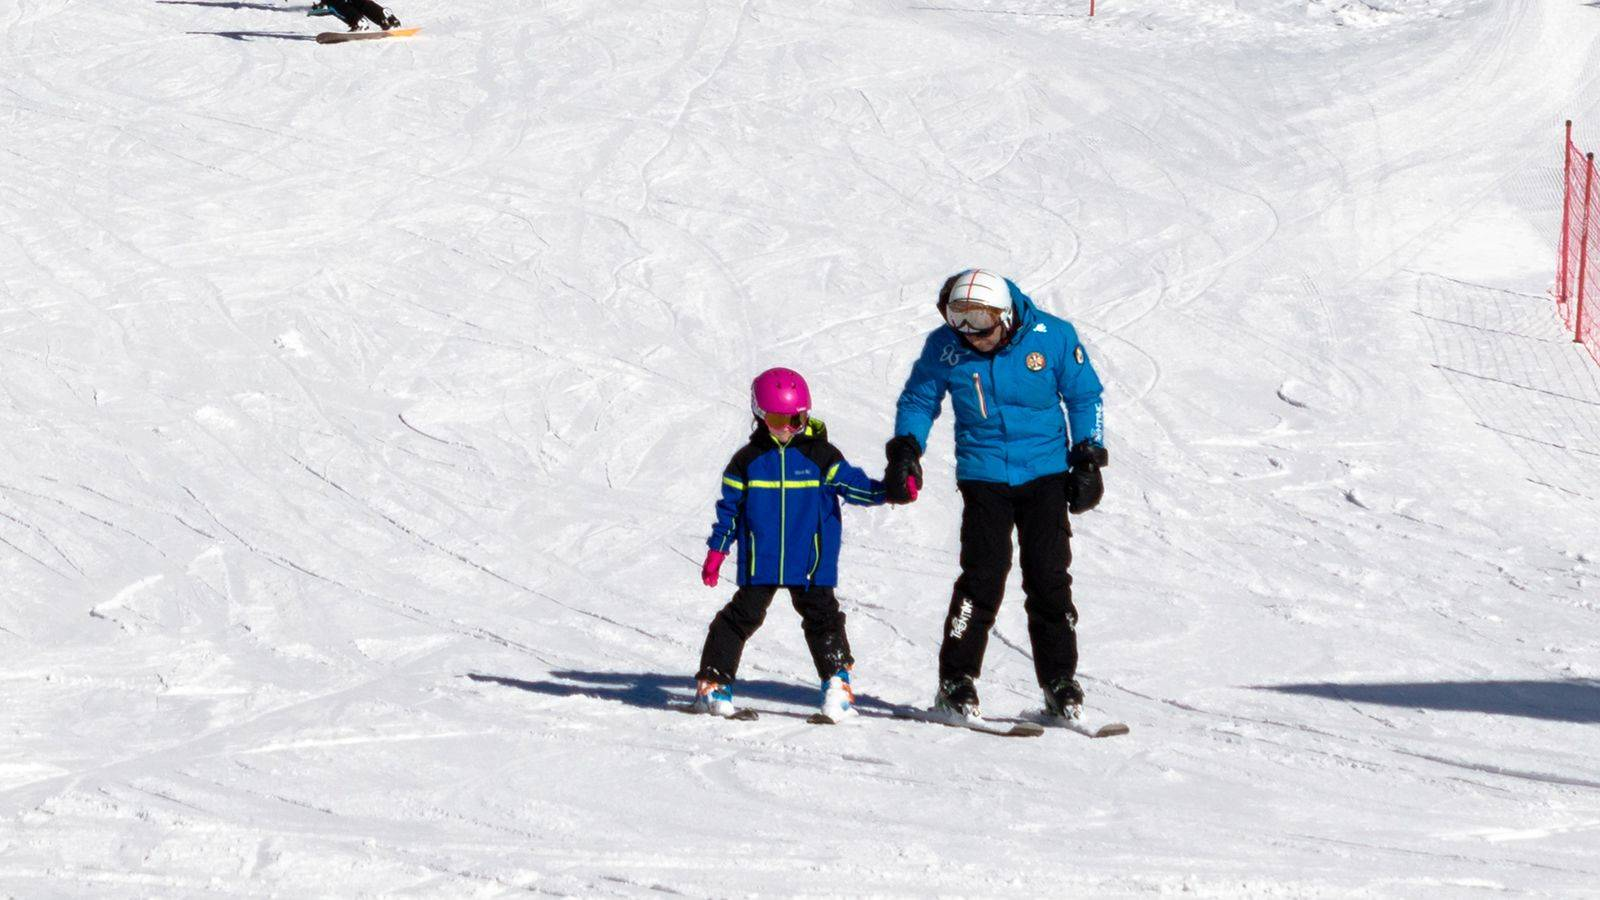 A teacher takes a child by the hand and teaches him how to ski